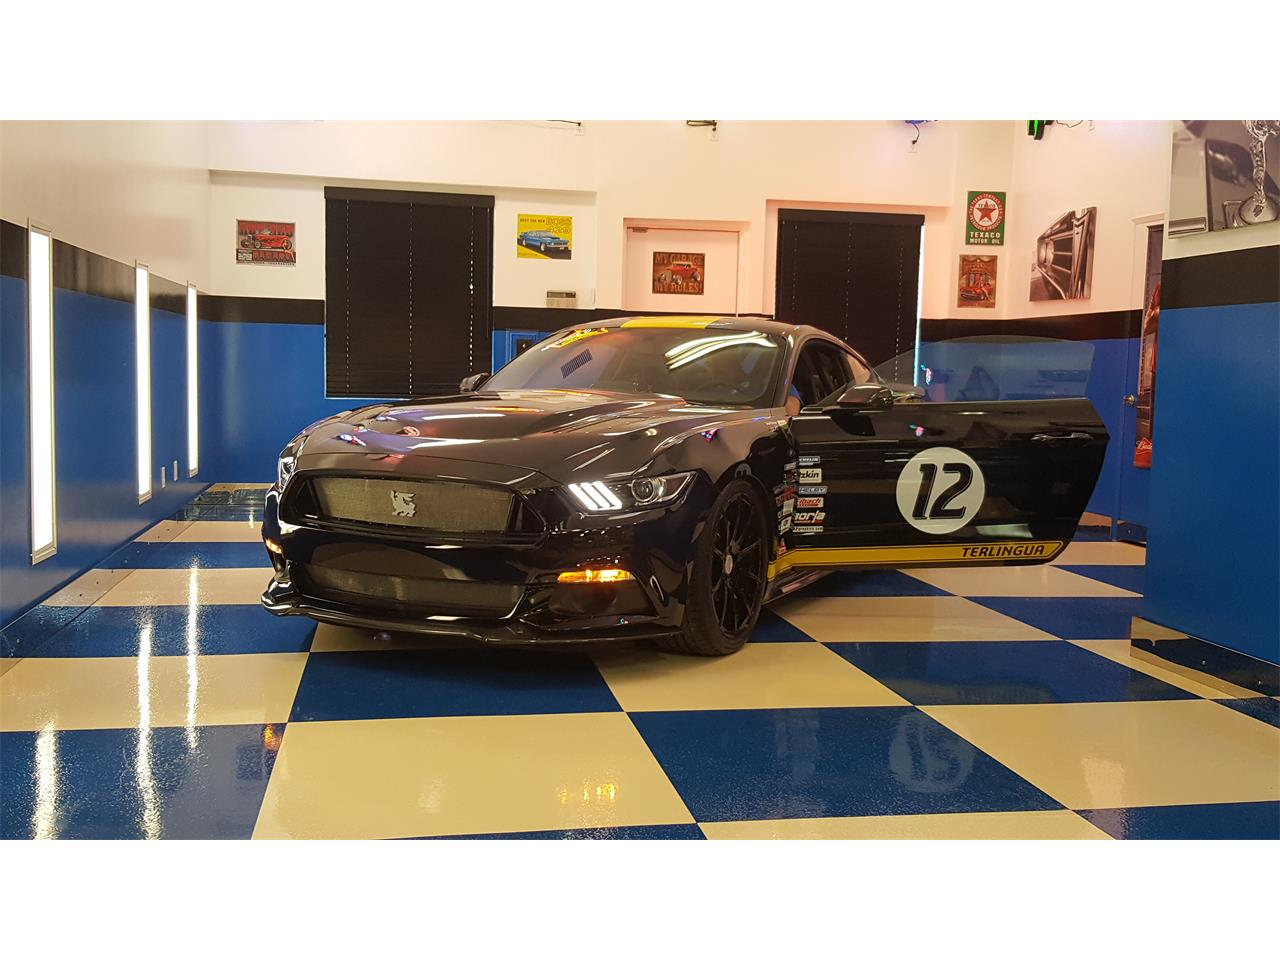 For Sale: 2016 Shelby Mustang in Bakersfield, California